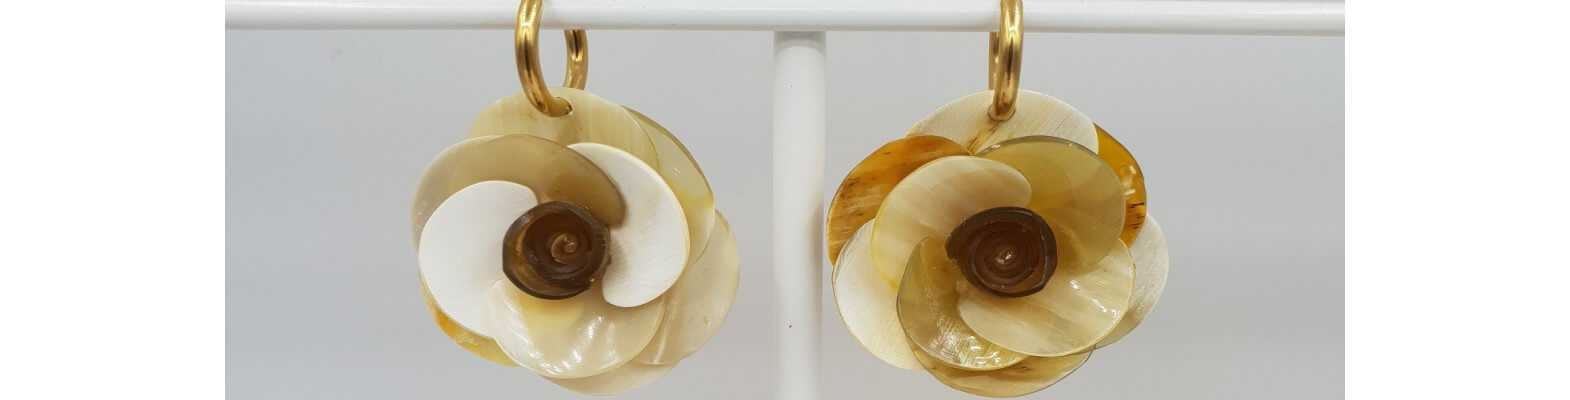 Gold plated earrings with Buffalo horn